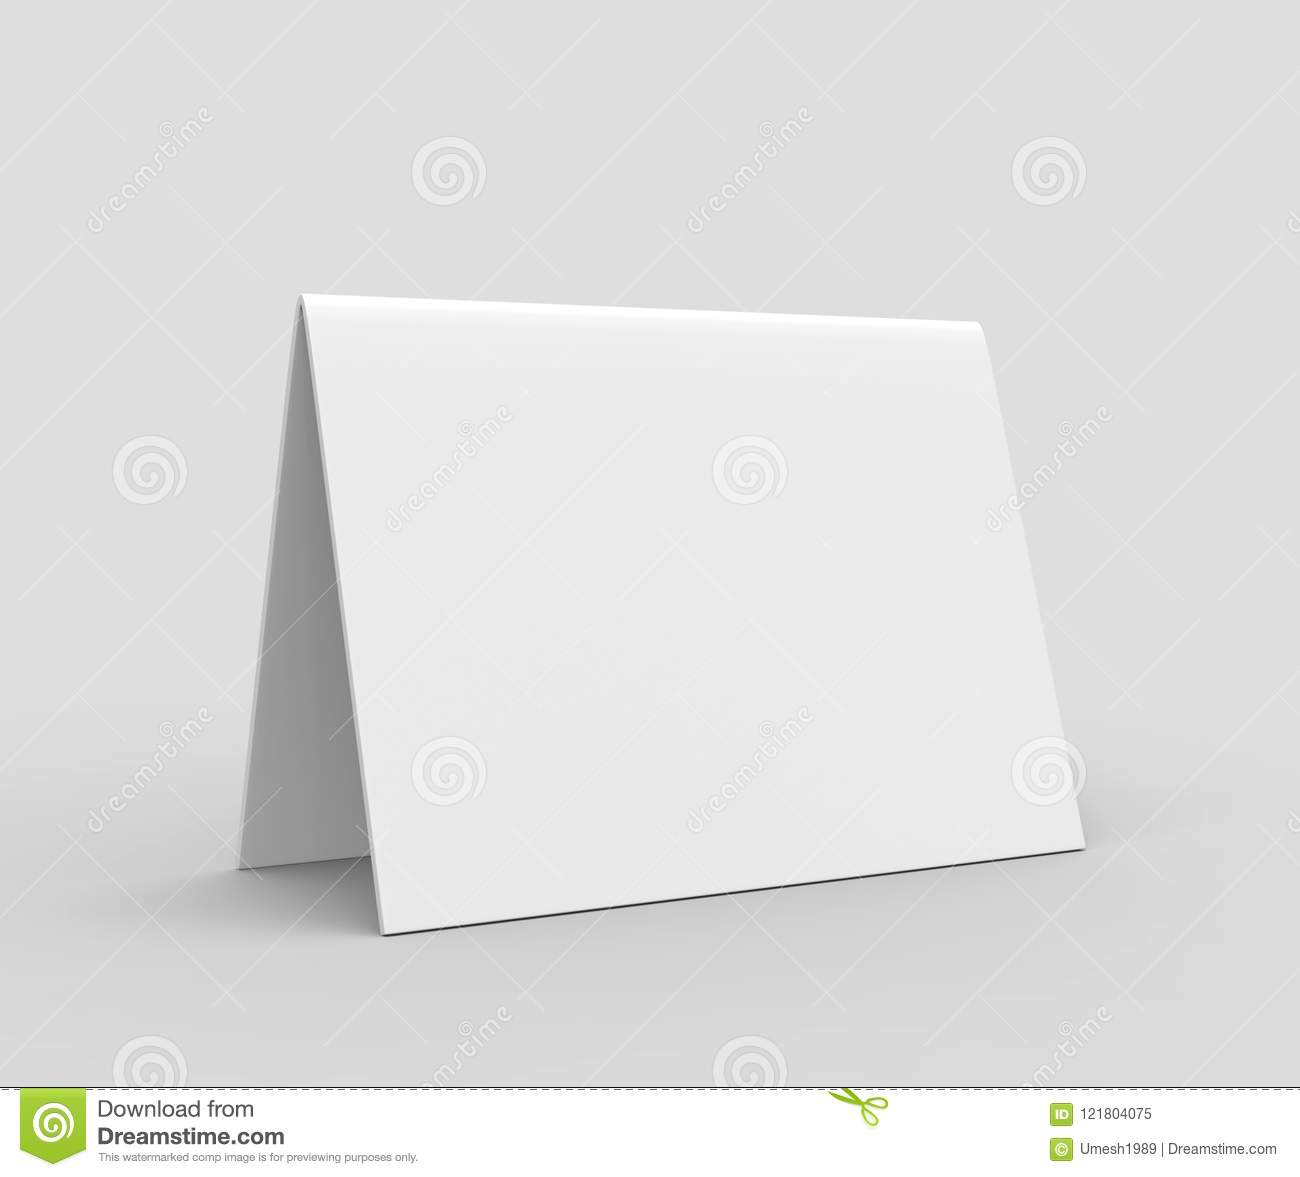 picture relating to Printable Tent Card referred to as Blank Desk Tent Card For Design and style Presentation Or Mock Up